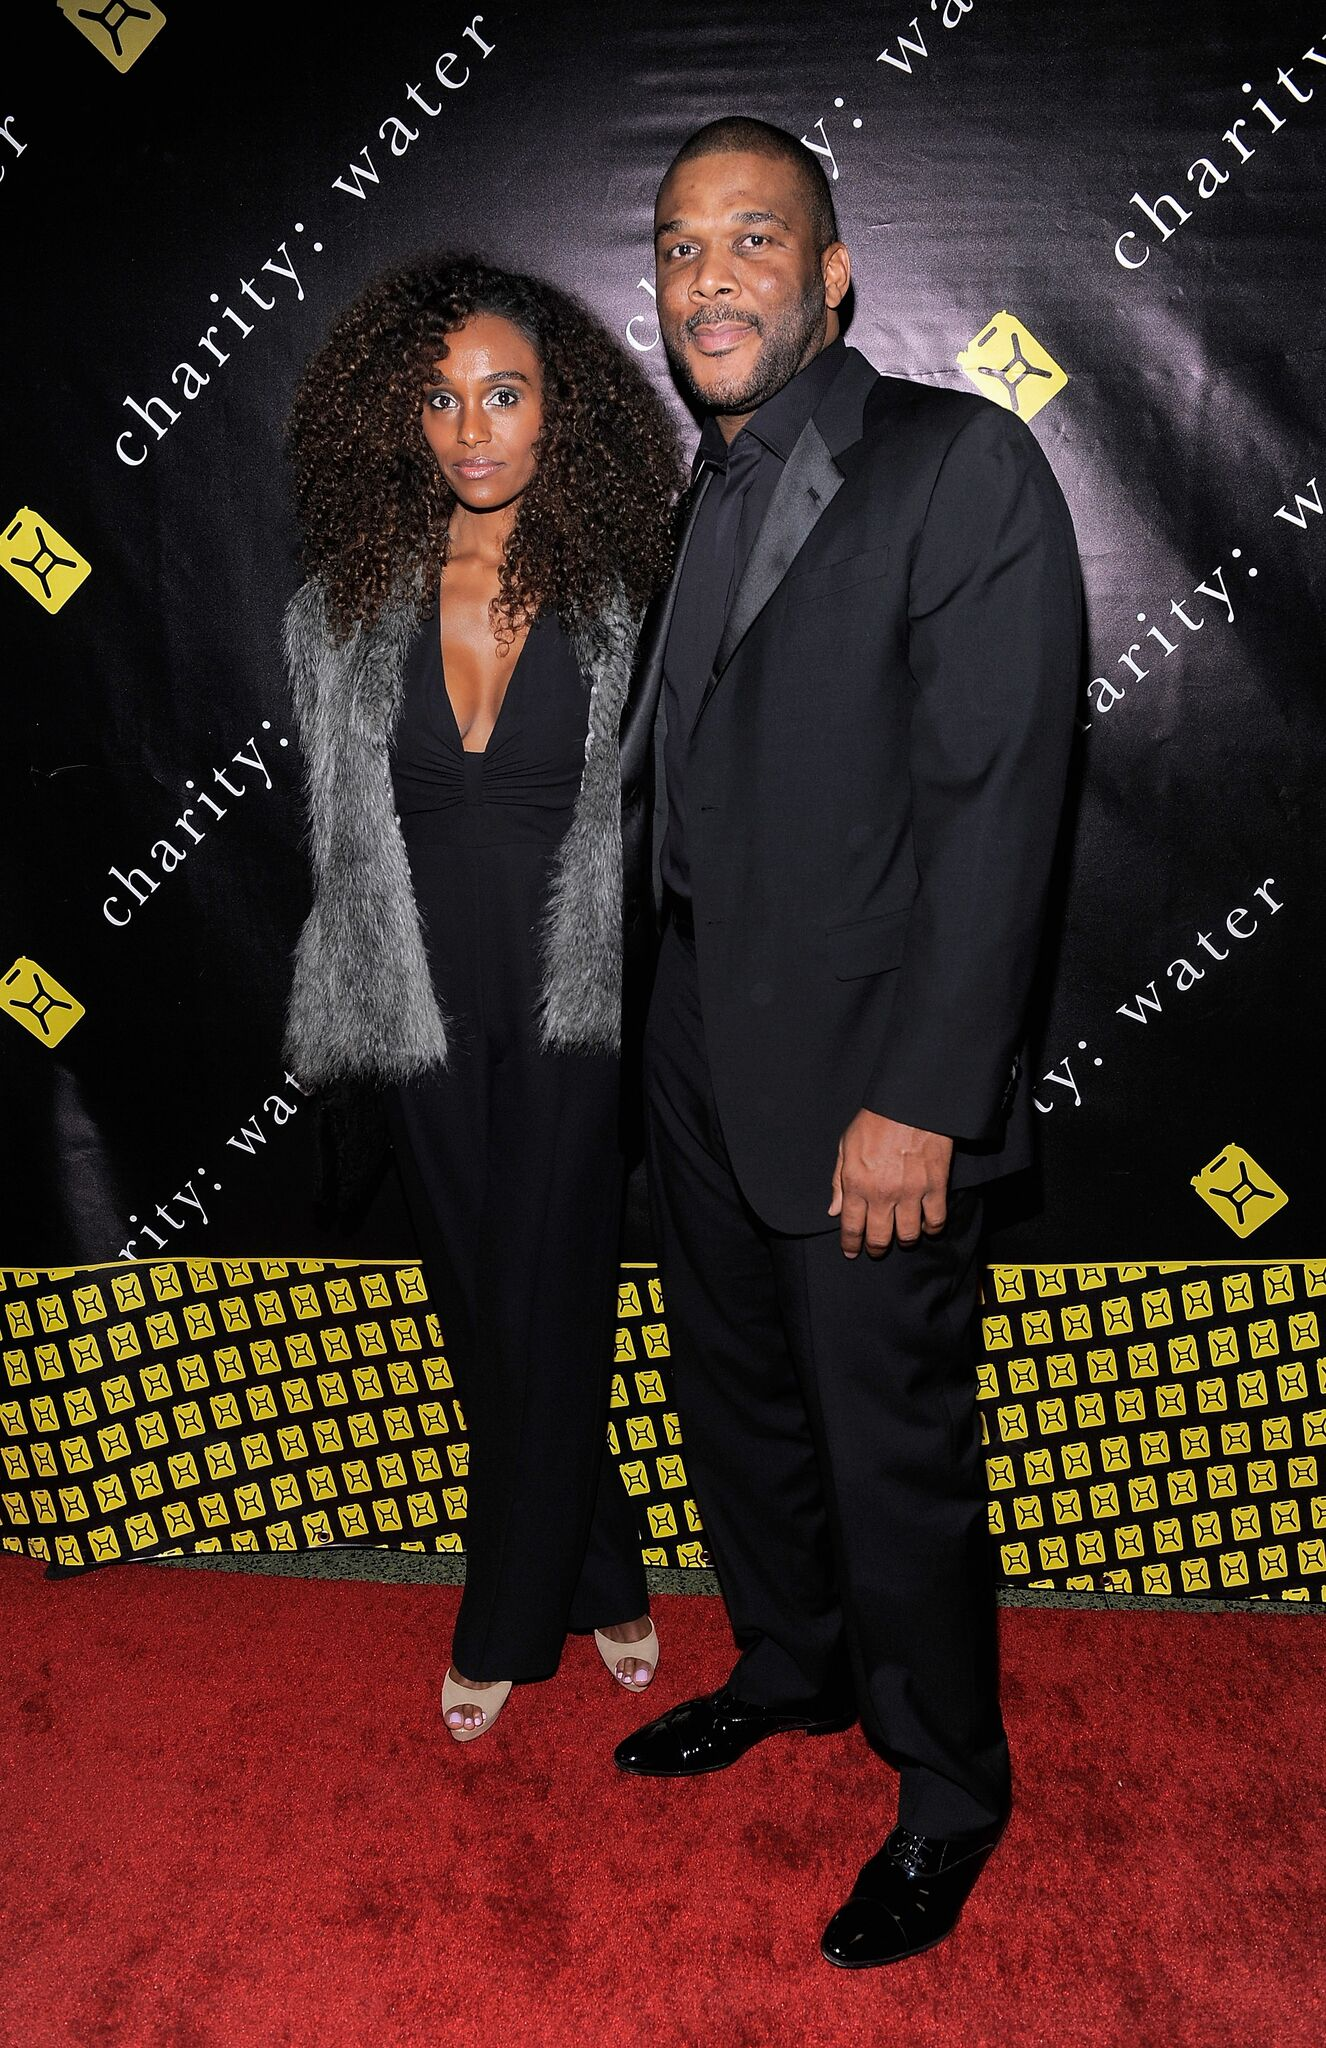 Model Gelila Bekele and writer/director Tyler Perry pose for a photo at the 6th Annual Charity: Ball at the 69th Regiment Armory | Photo: Getty Images